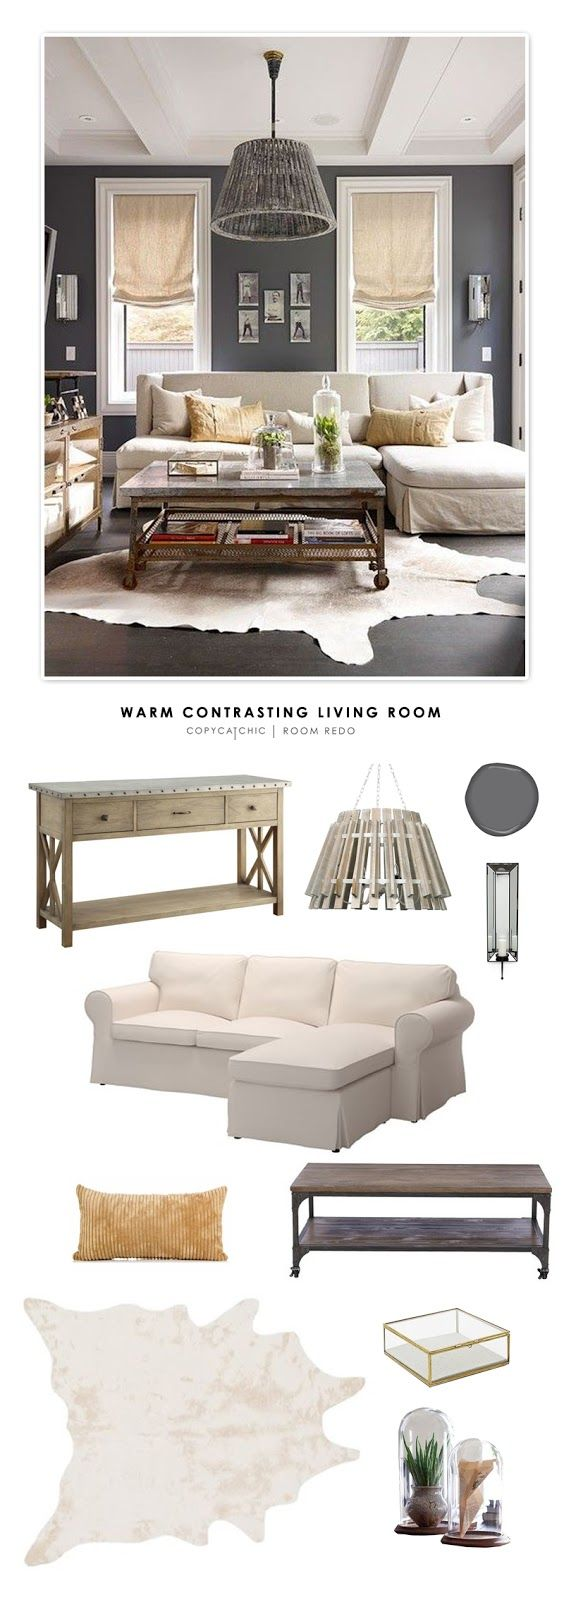 Copy Cat Chic Room Redo | Warm Contrasting Living Room: